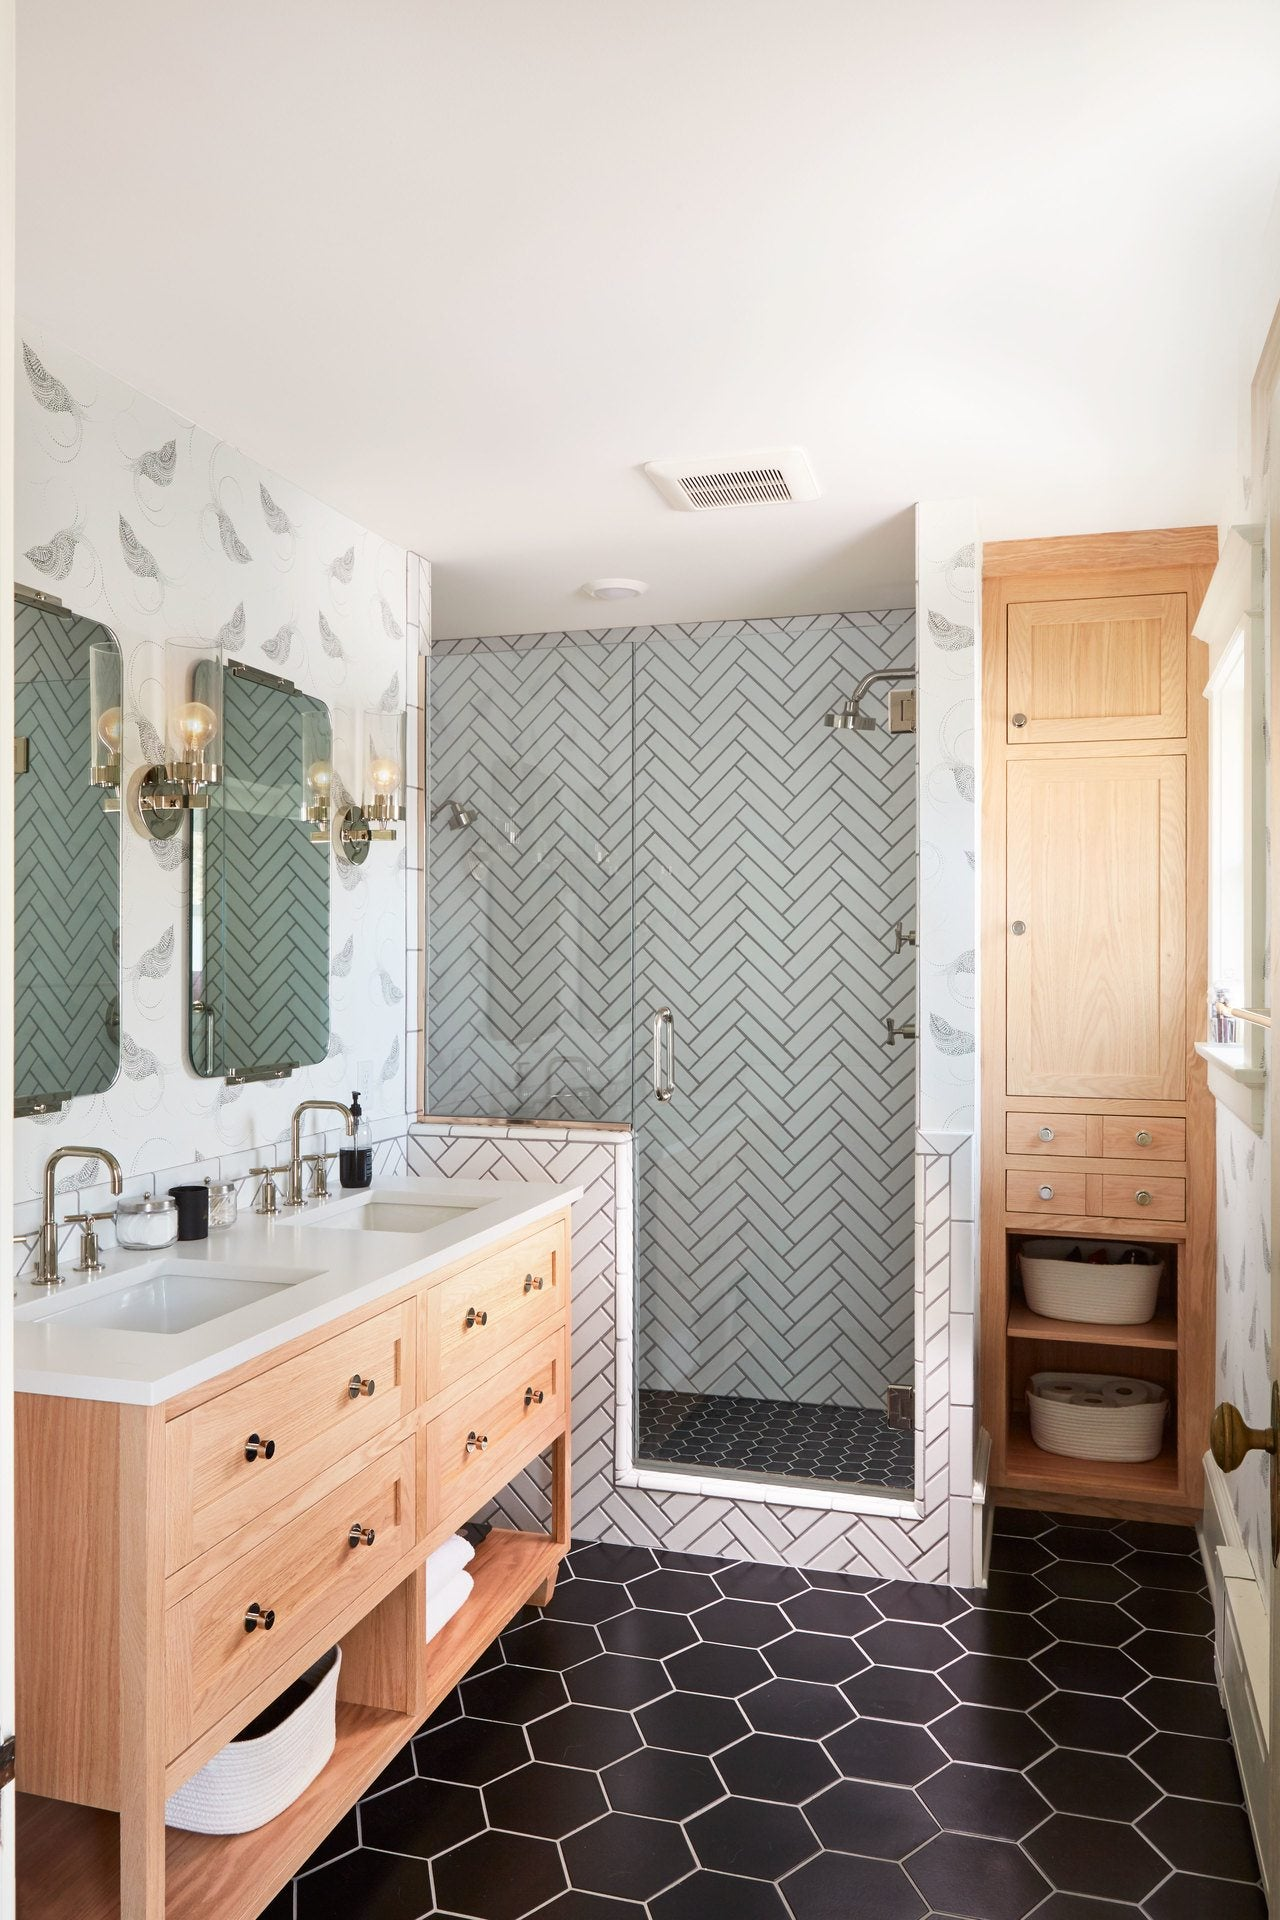 Resolve to Redecorate: Aimee's Home Remodel | Part 1: Master Bathroom | Pajarito Black wallpaper | Laundry Studio | Hygge & West